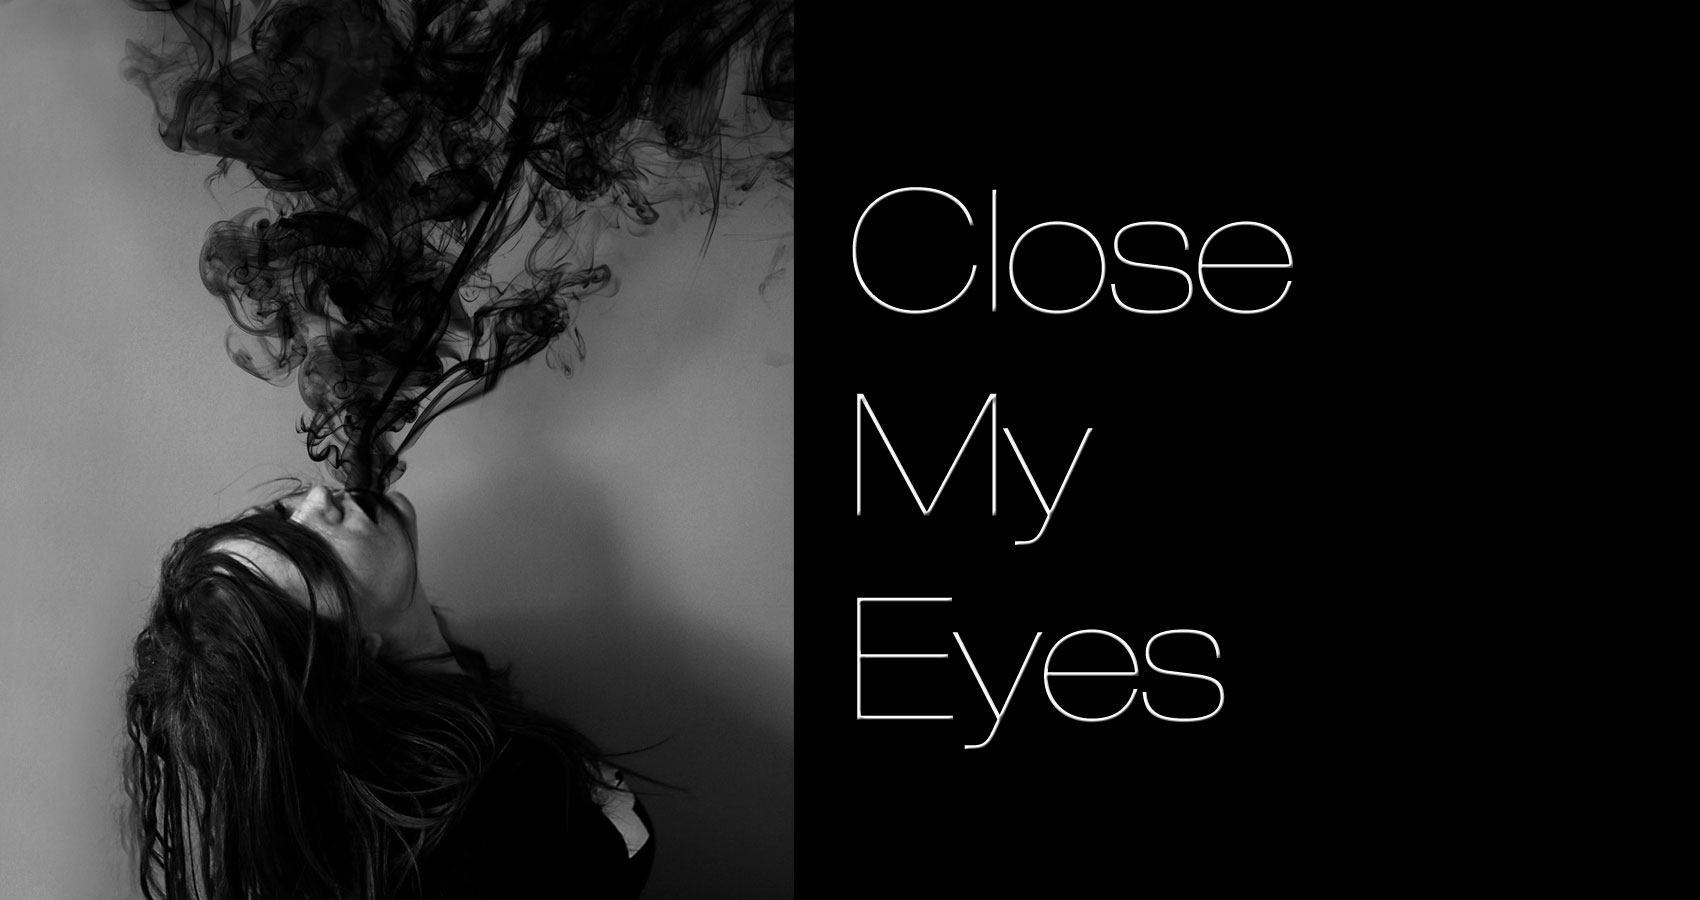 Close My Eyes written by Fallen Engel at Spillwords.com